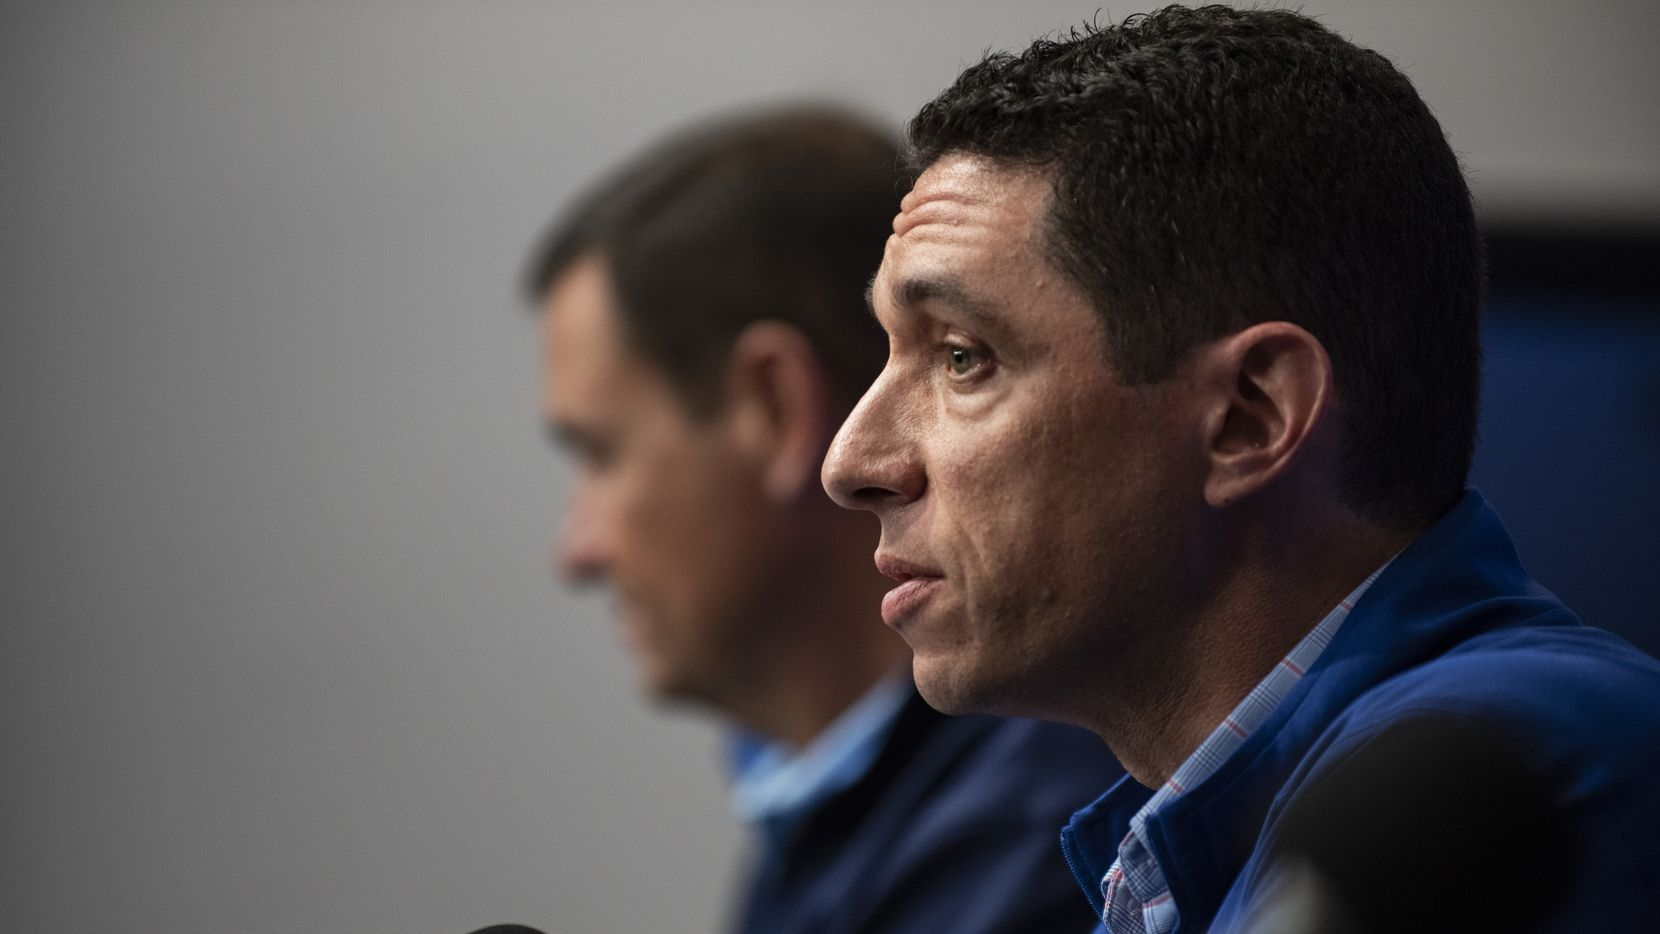 Texas Rangers President of Baseball Operations Jon Daniels answers questions during the end of the year press conference at Globe Life Field on Wednesday, October 6, 2021 in Arlington, Texas.